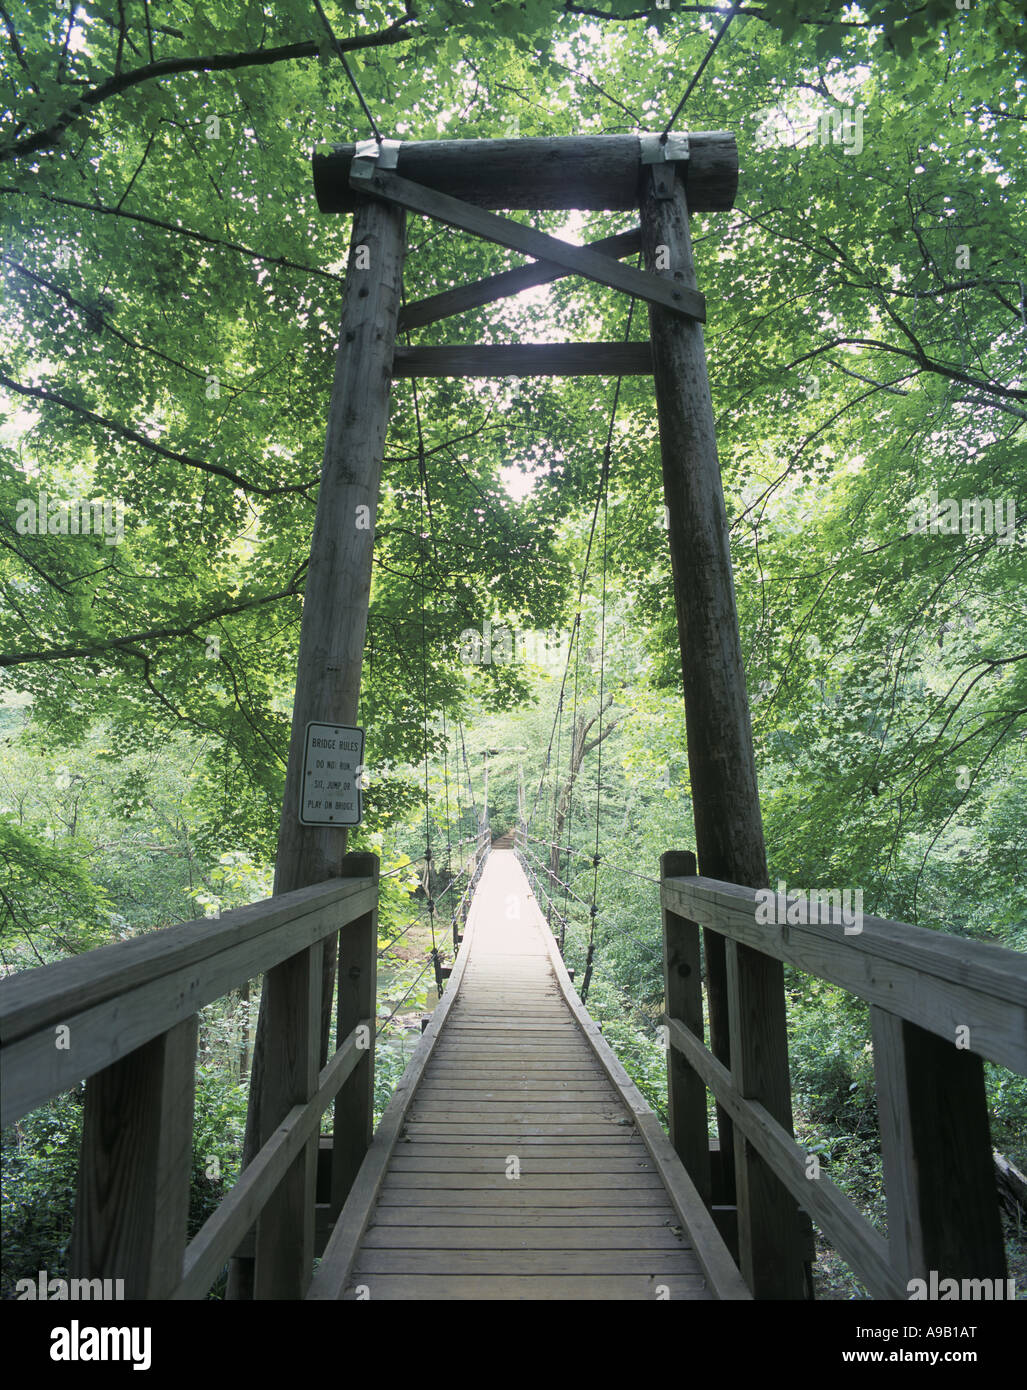 FEWS FORD SUSPENSION WOODEN SUSPENSION FOOTBRIDGE ENO STATE PARK DURHAM NORTH CAROLINA USA - Stock Image